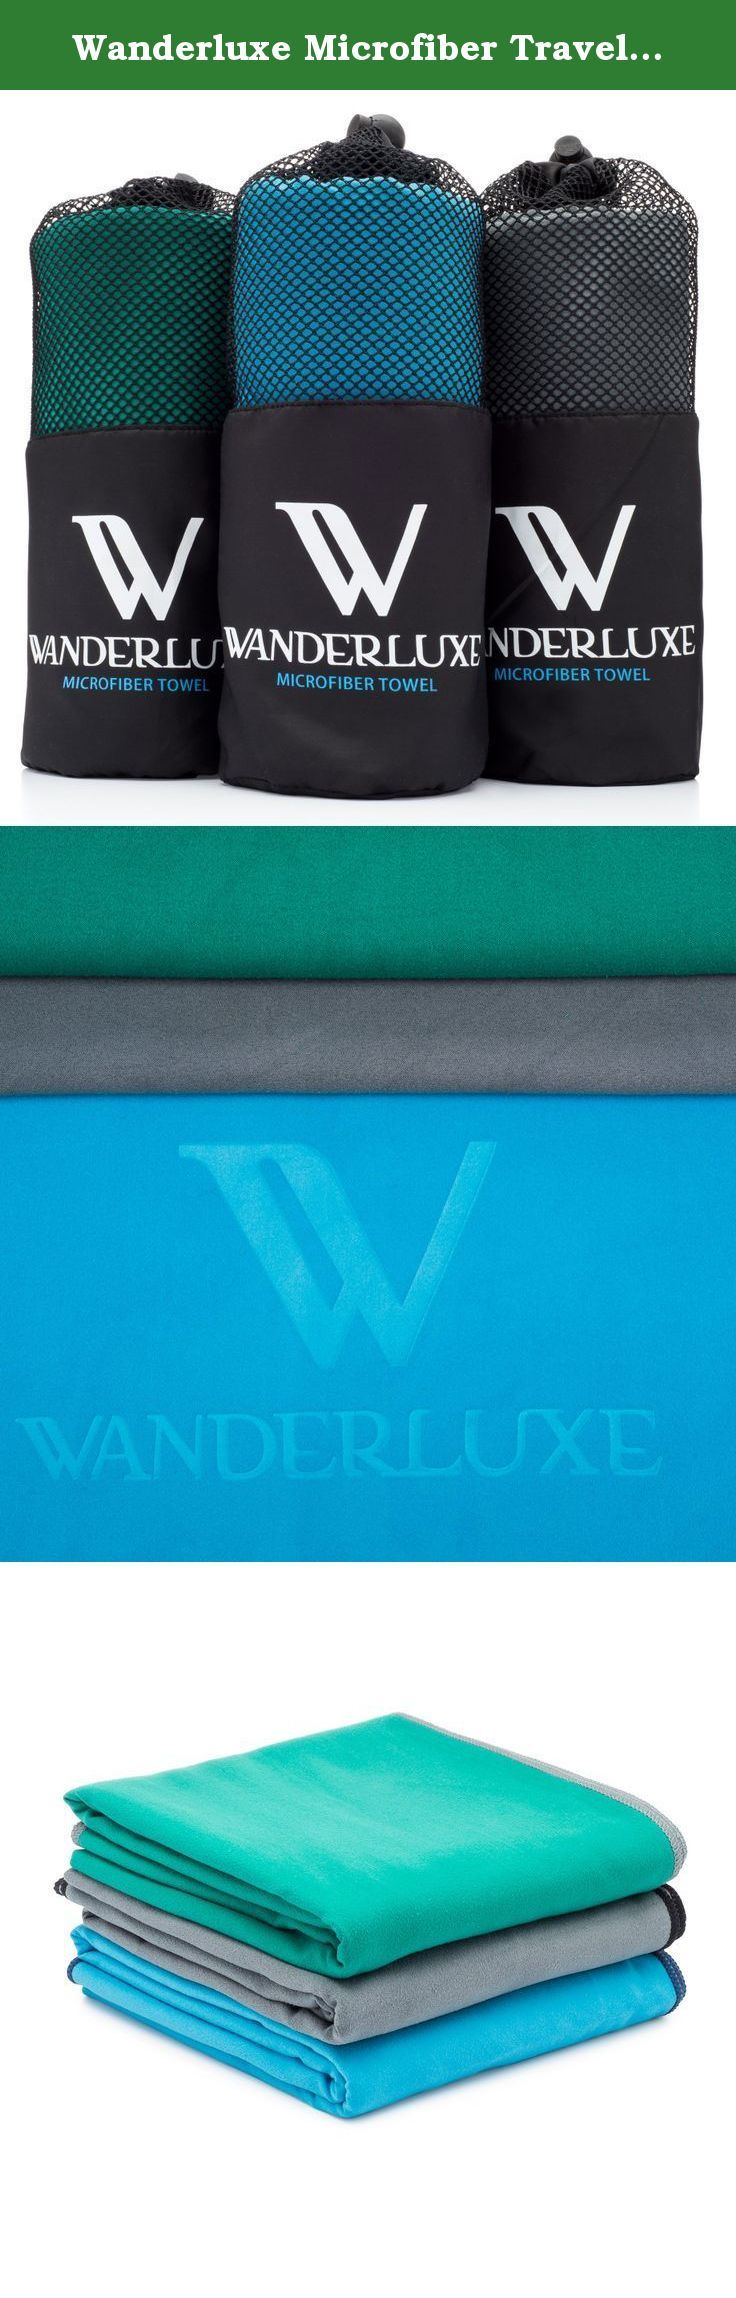 """Wanderluxe Microfiber Travel Towel XL / Swimming Towel Set   Super Absorbent and Fast Drying   Bath Towel (60"""" X 28"""") with Hand Towel & Storage Bag! Perfect for Beach, Gym, Camping, Yoga. Why settle for cheap, skimpy towels? Our premium travel-&-sport towels look and feel ultra-luxe. Plus, they absorb better and dry faster than all the other towels we tested. The Secret's the Premium Microfiber This blissfully soft fabric is sueded for super absorbency. It feels awesome next to your skin!..."""